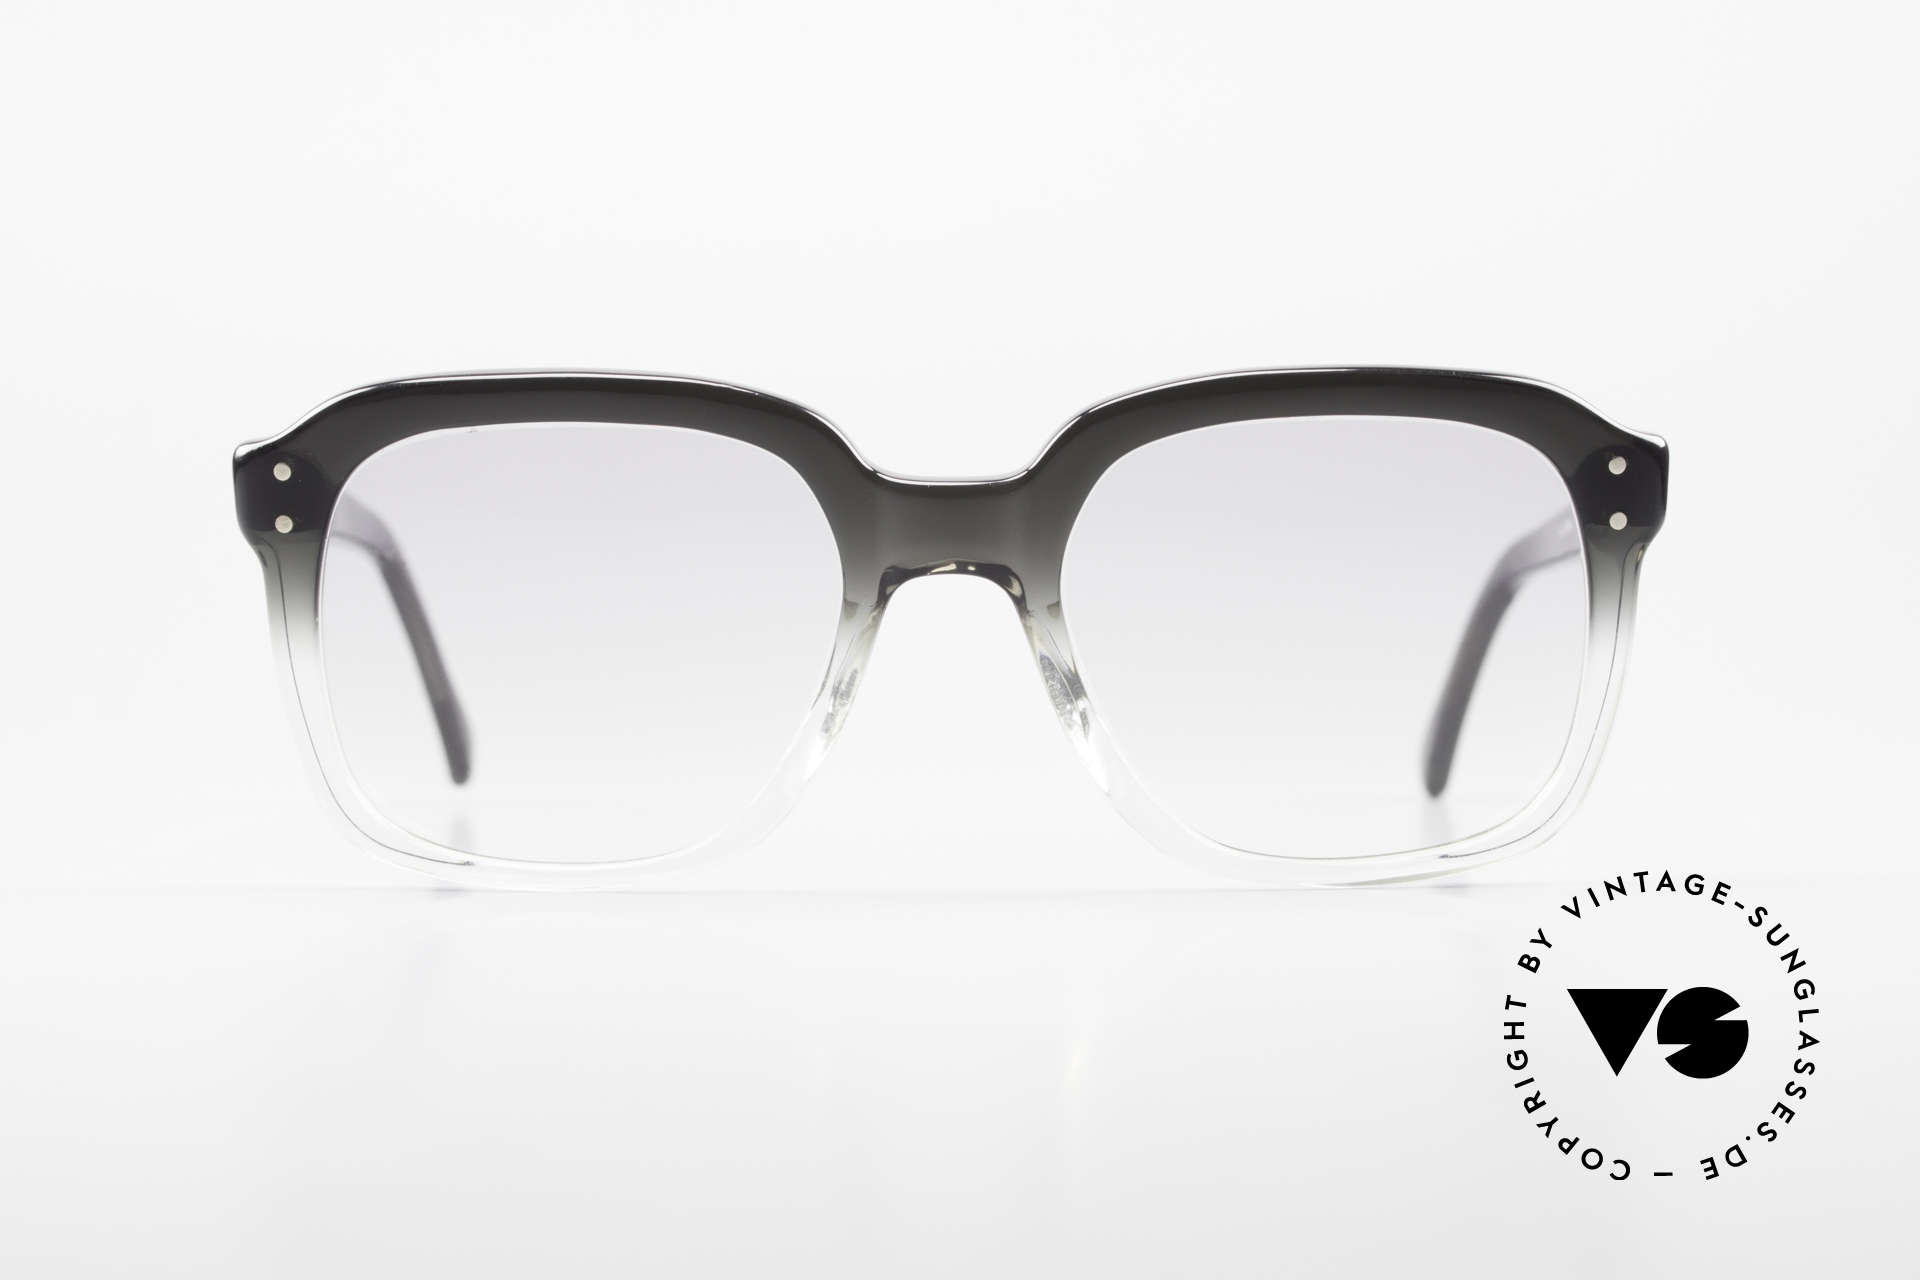 Metzler 449 1970's Original Nerd Glasses, a true classic at that time - reclaimed nerd style today, Made for Men